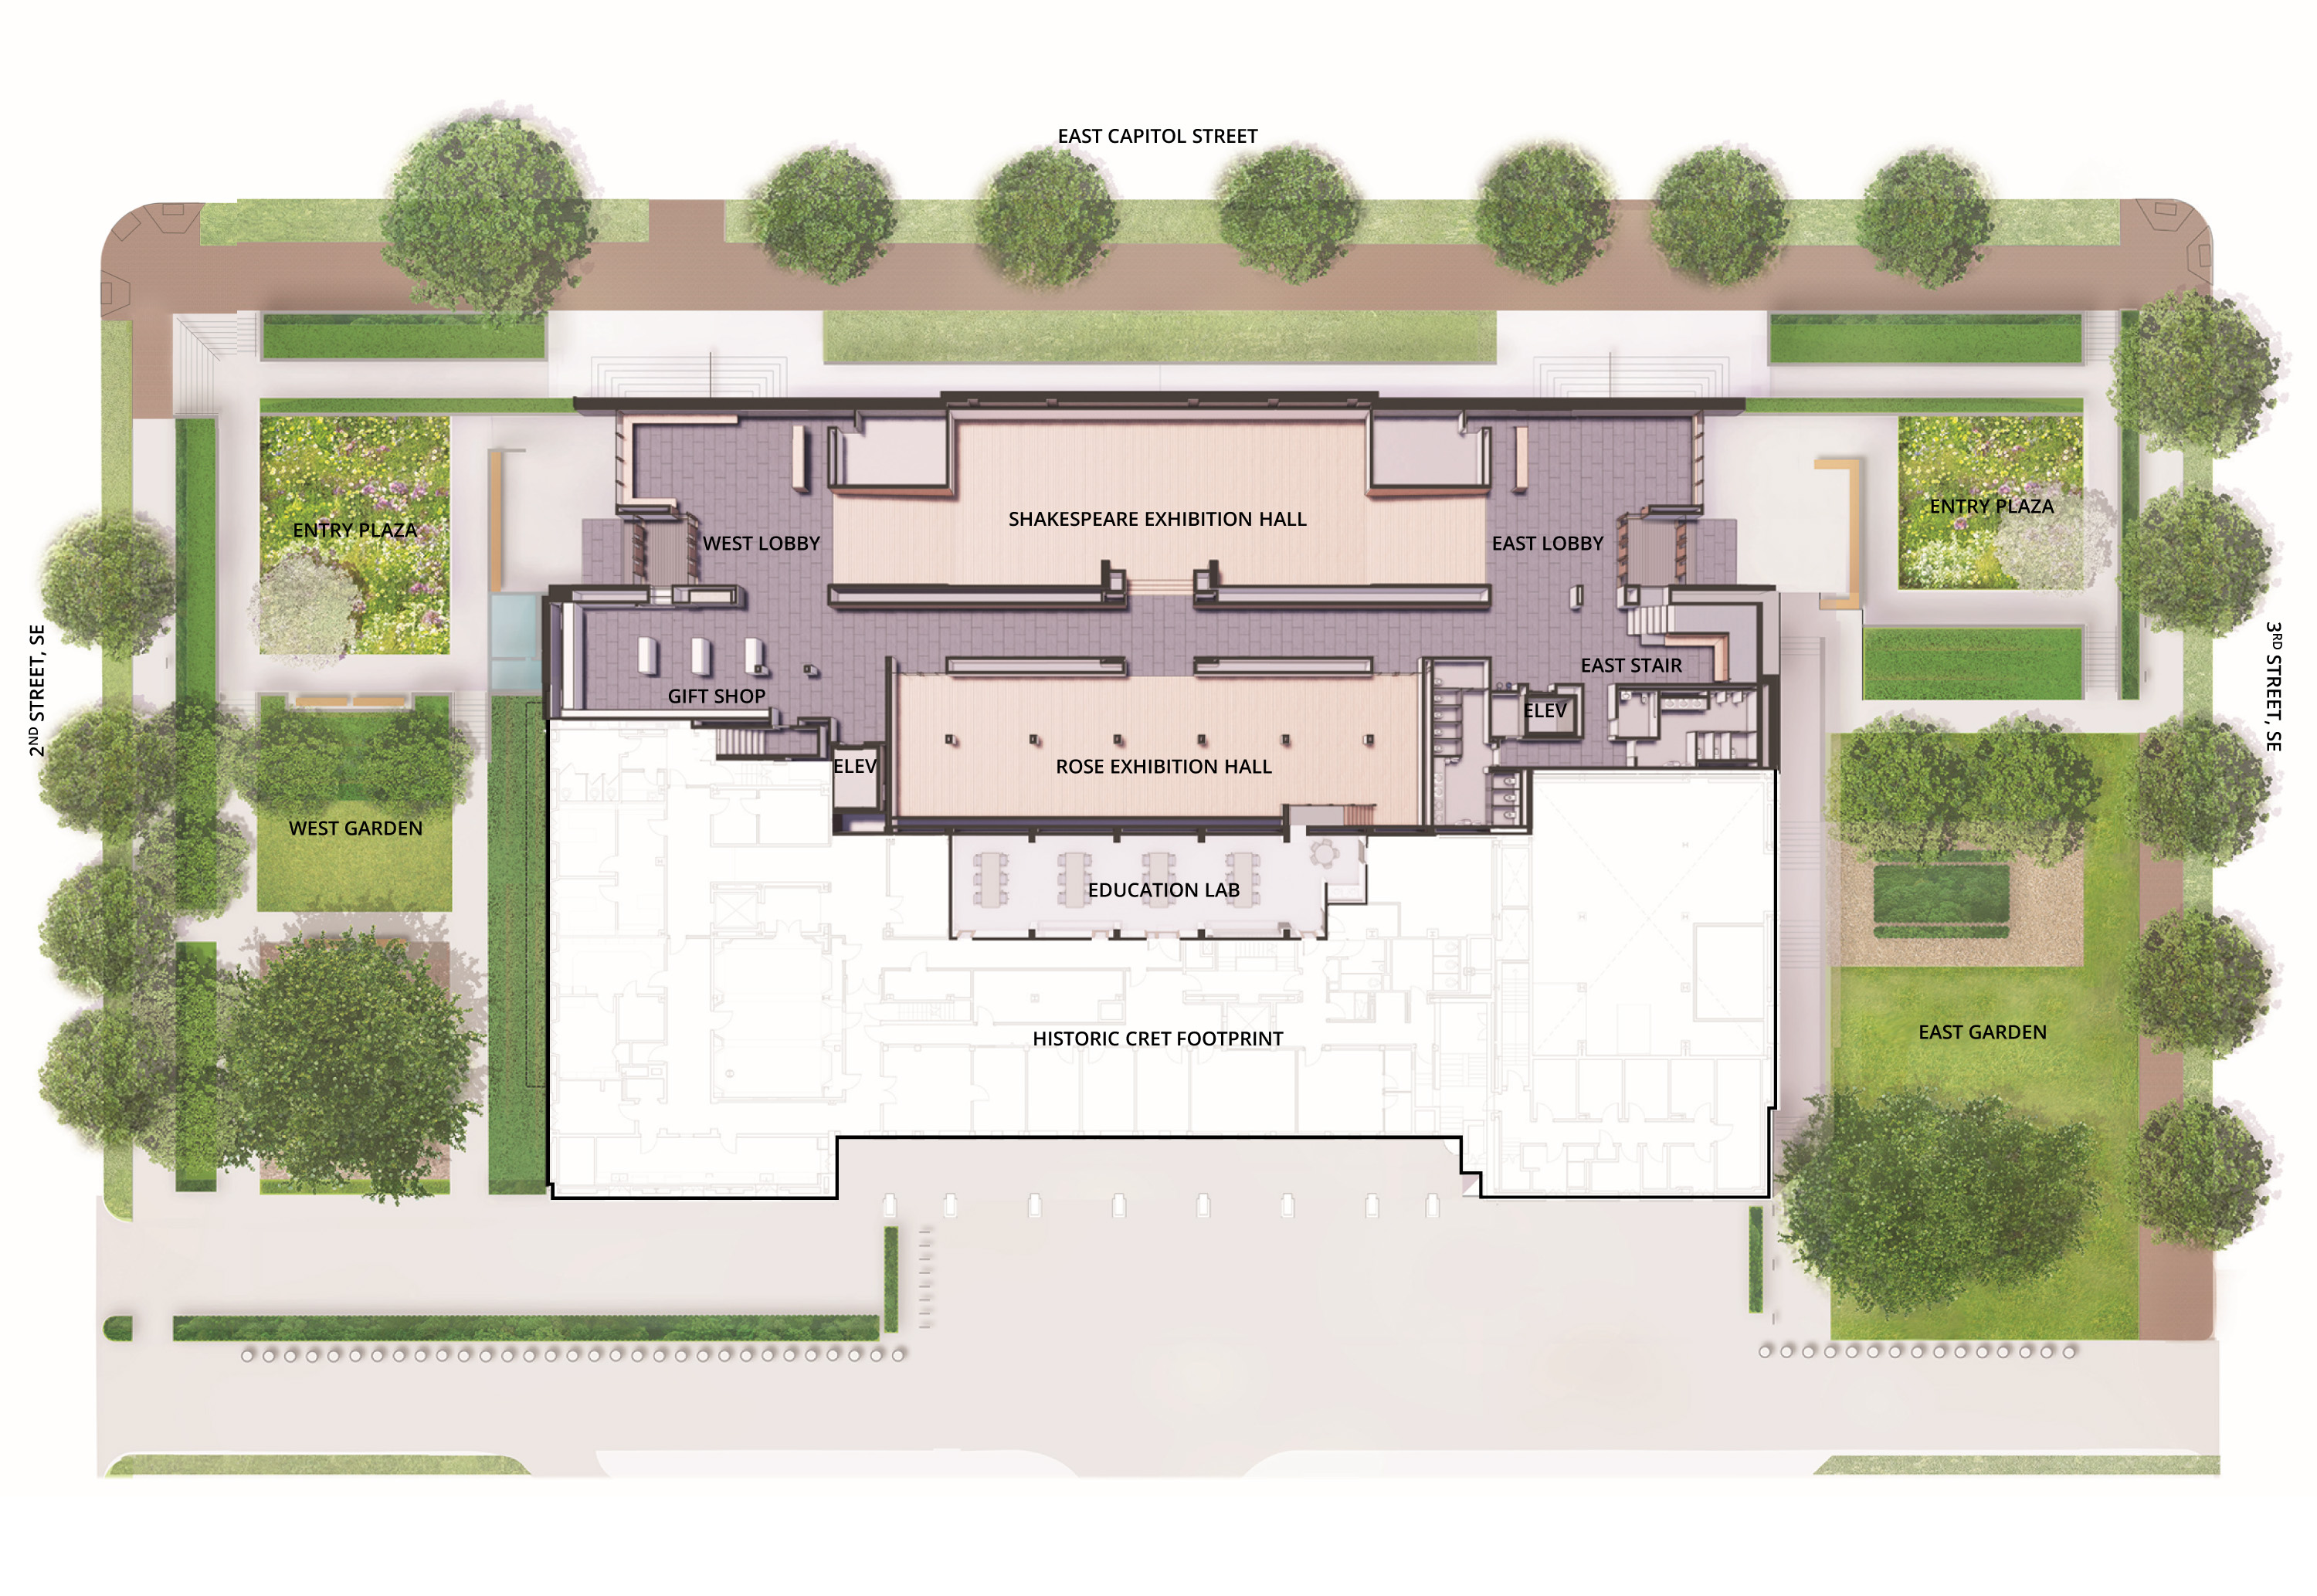 Rendering of building floor plan with entry plazas on the east and west